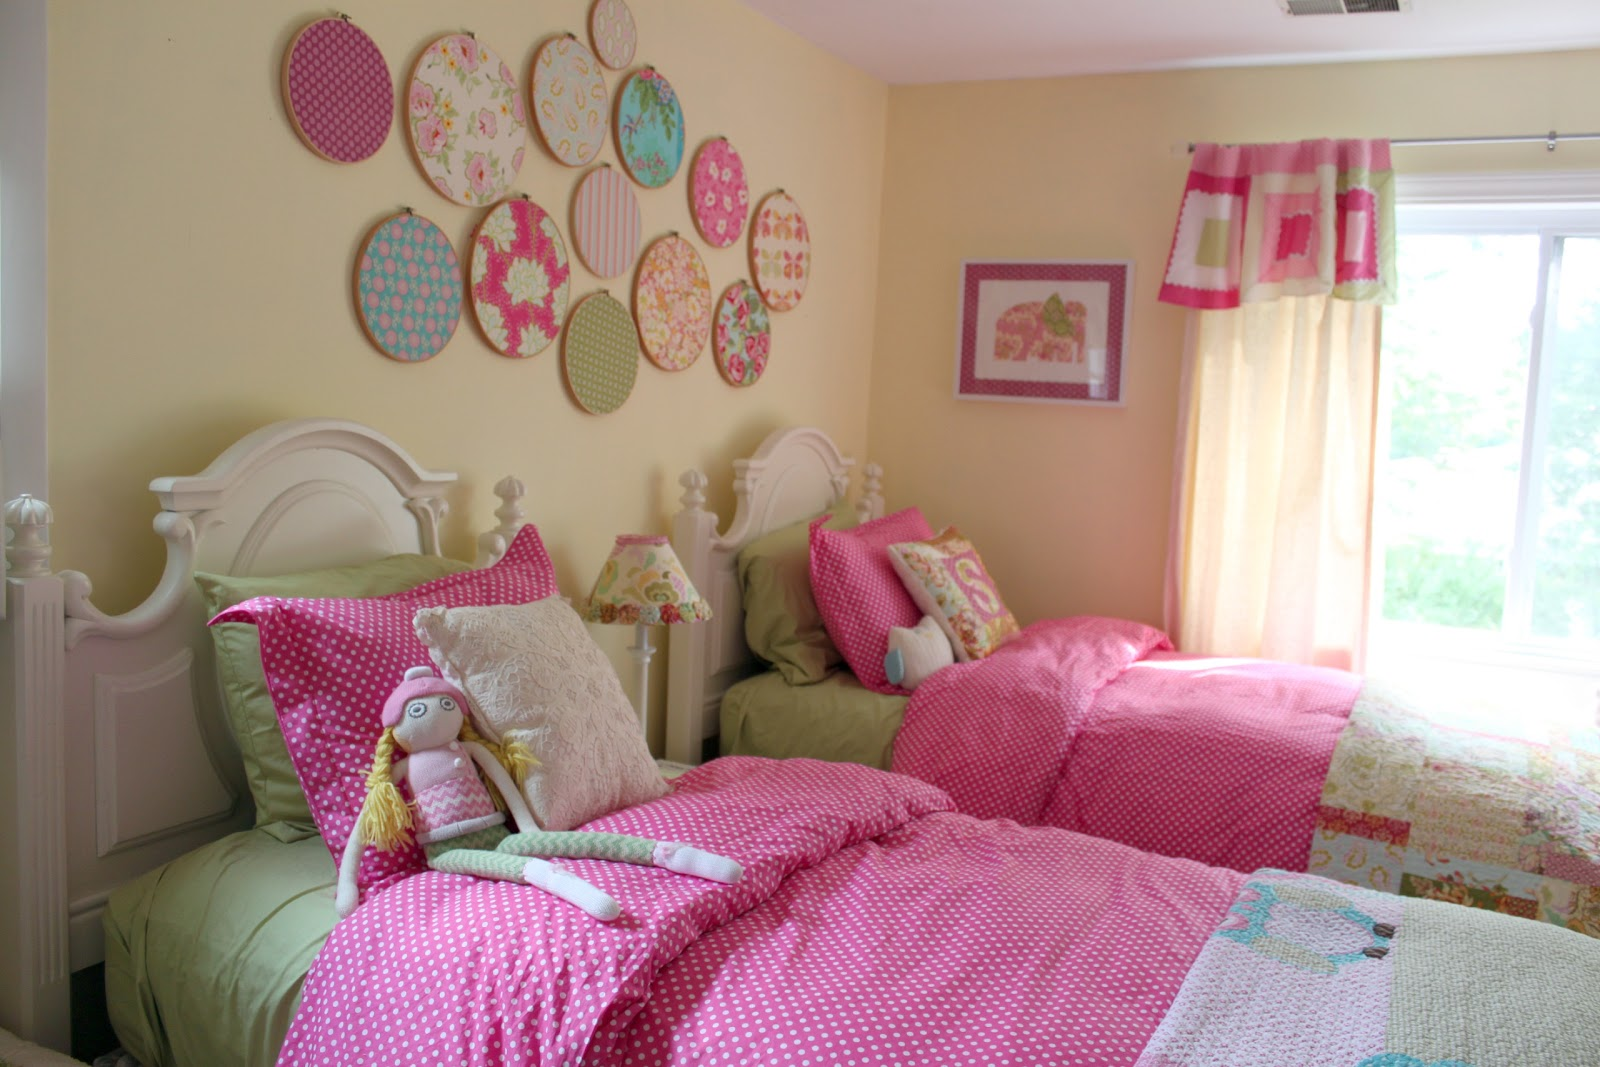 Decorating girls shared toddler bedroom the cottage mama for Girls bedroom decor ideas